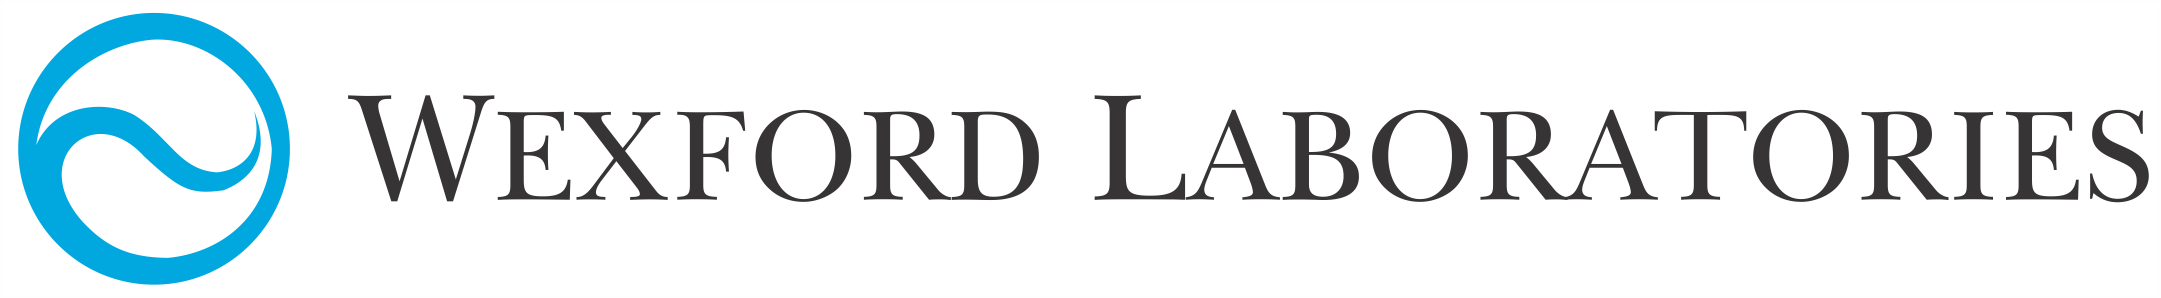 Wexford Laboratories Pvt. Ltd.